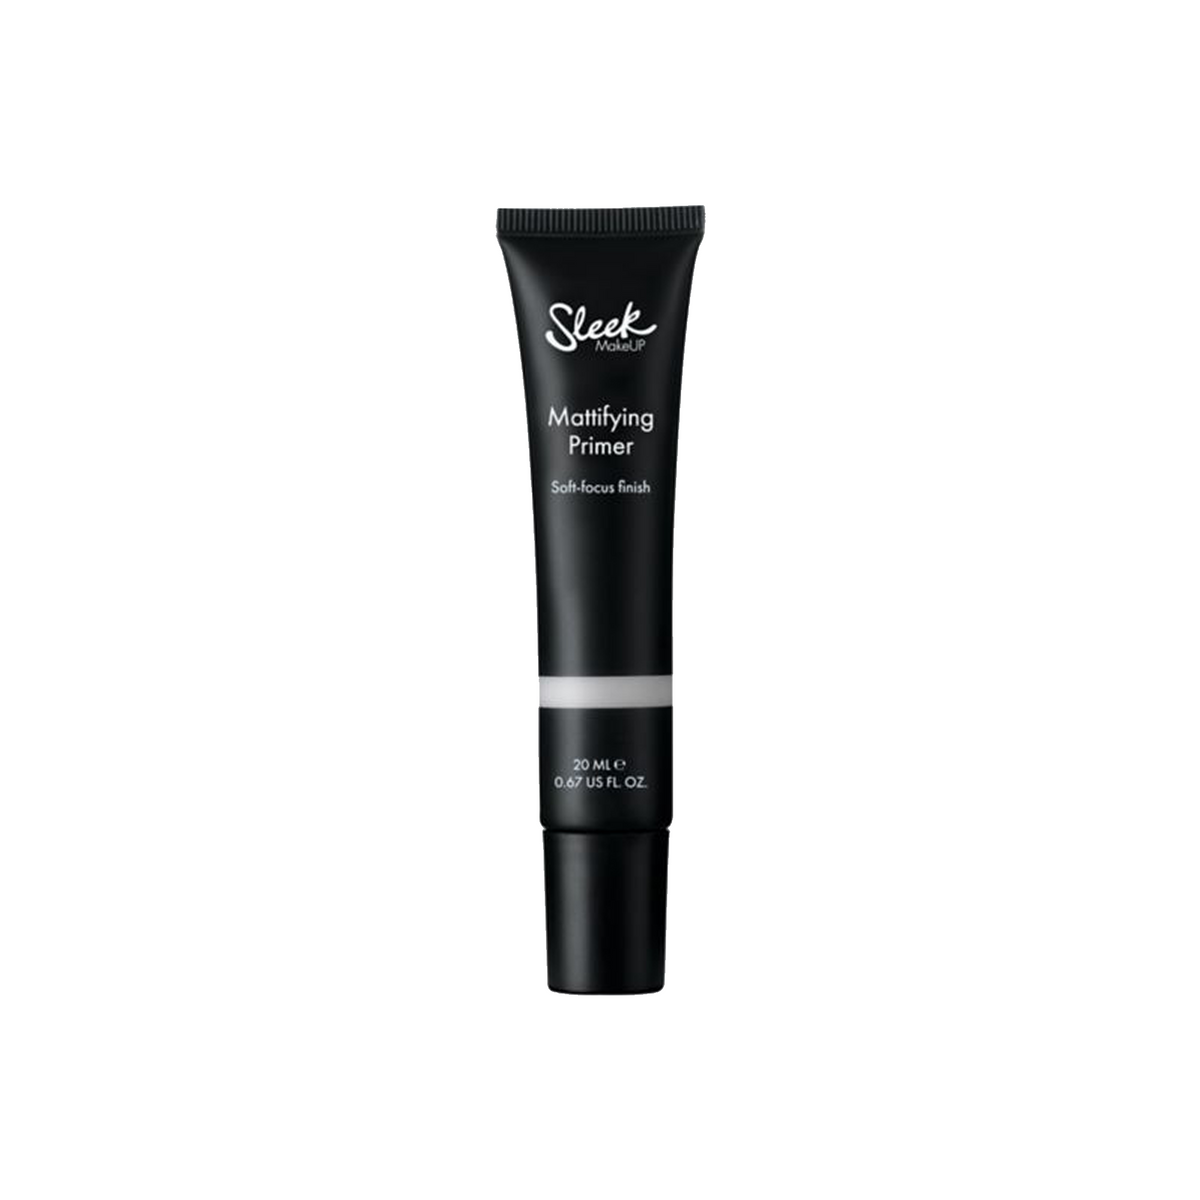 Sleek Mattifying Primer - Red Carpet FX - Professional Makeup